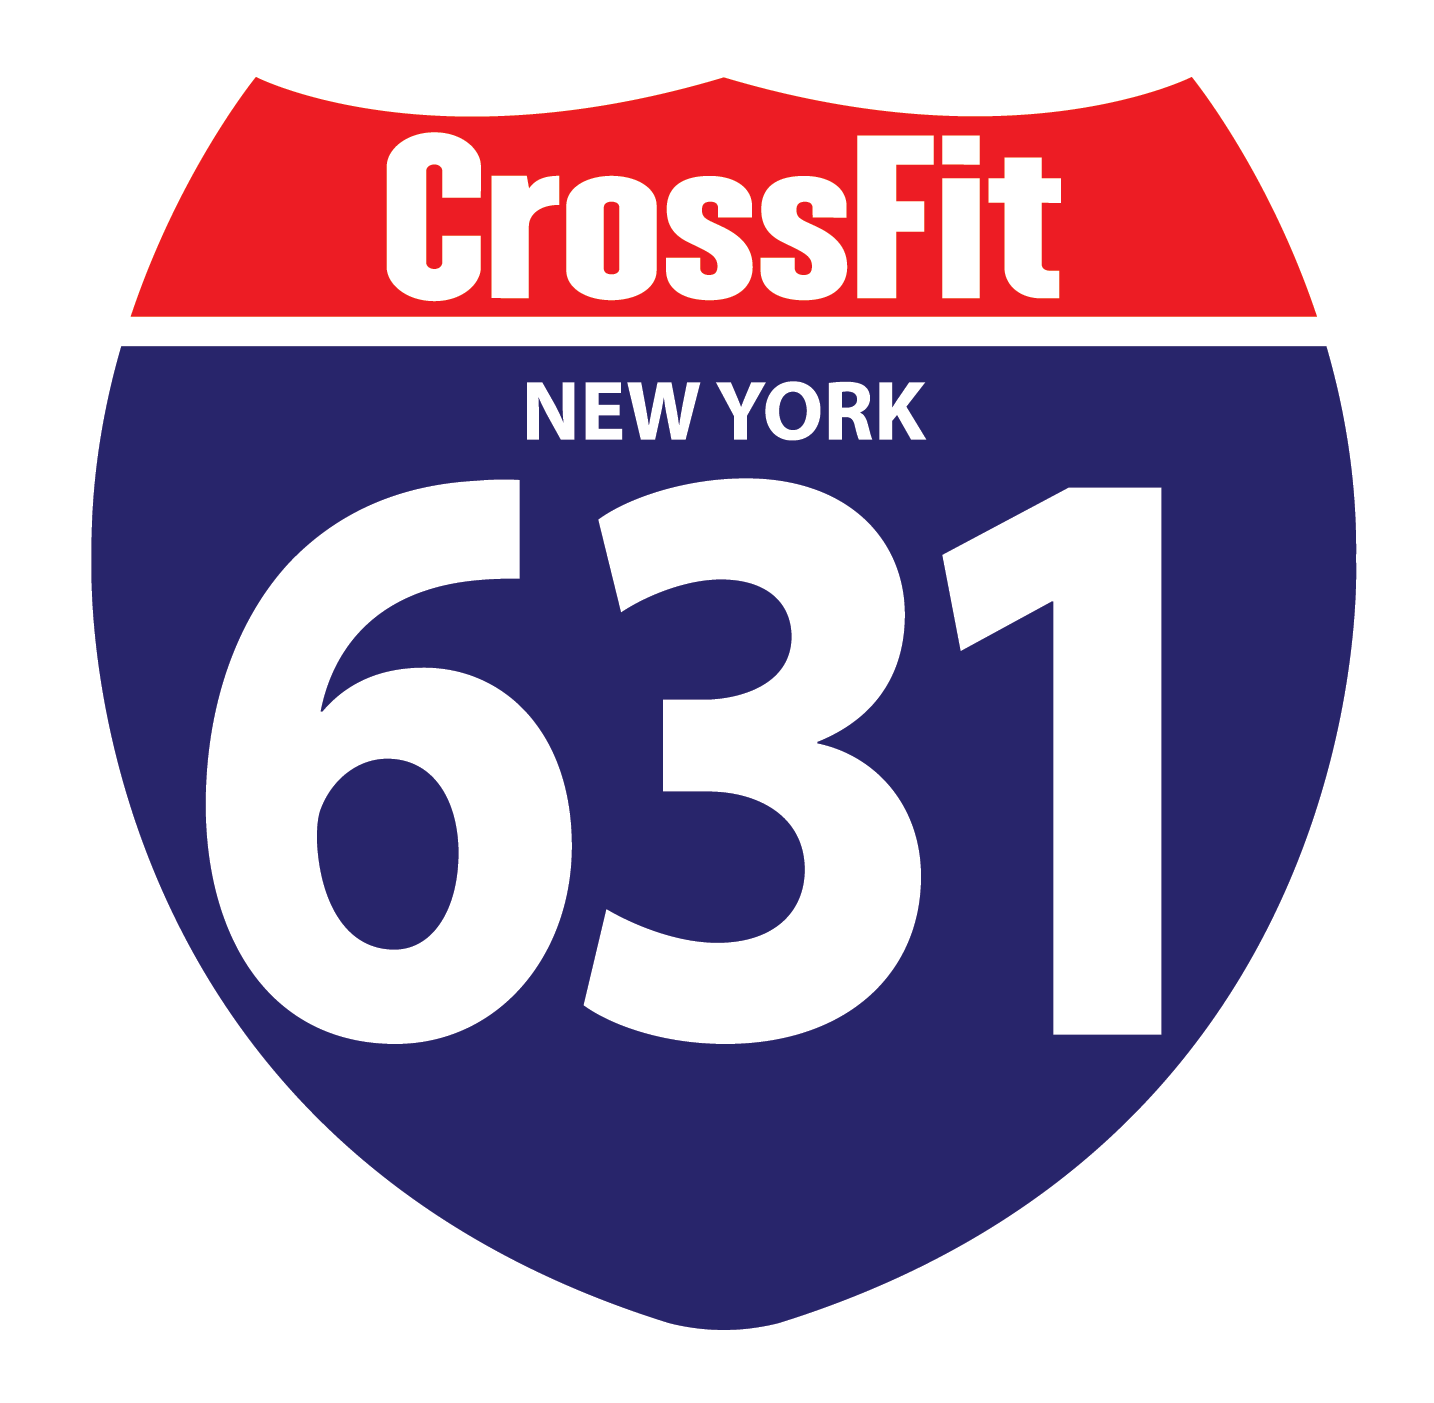 CrossFit 631 Selden